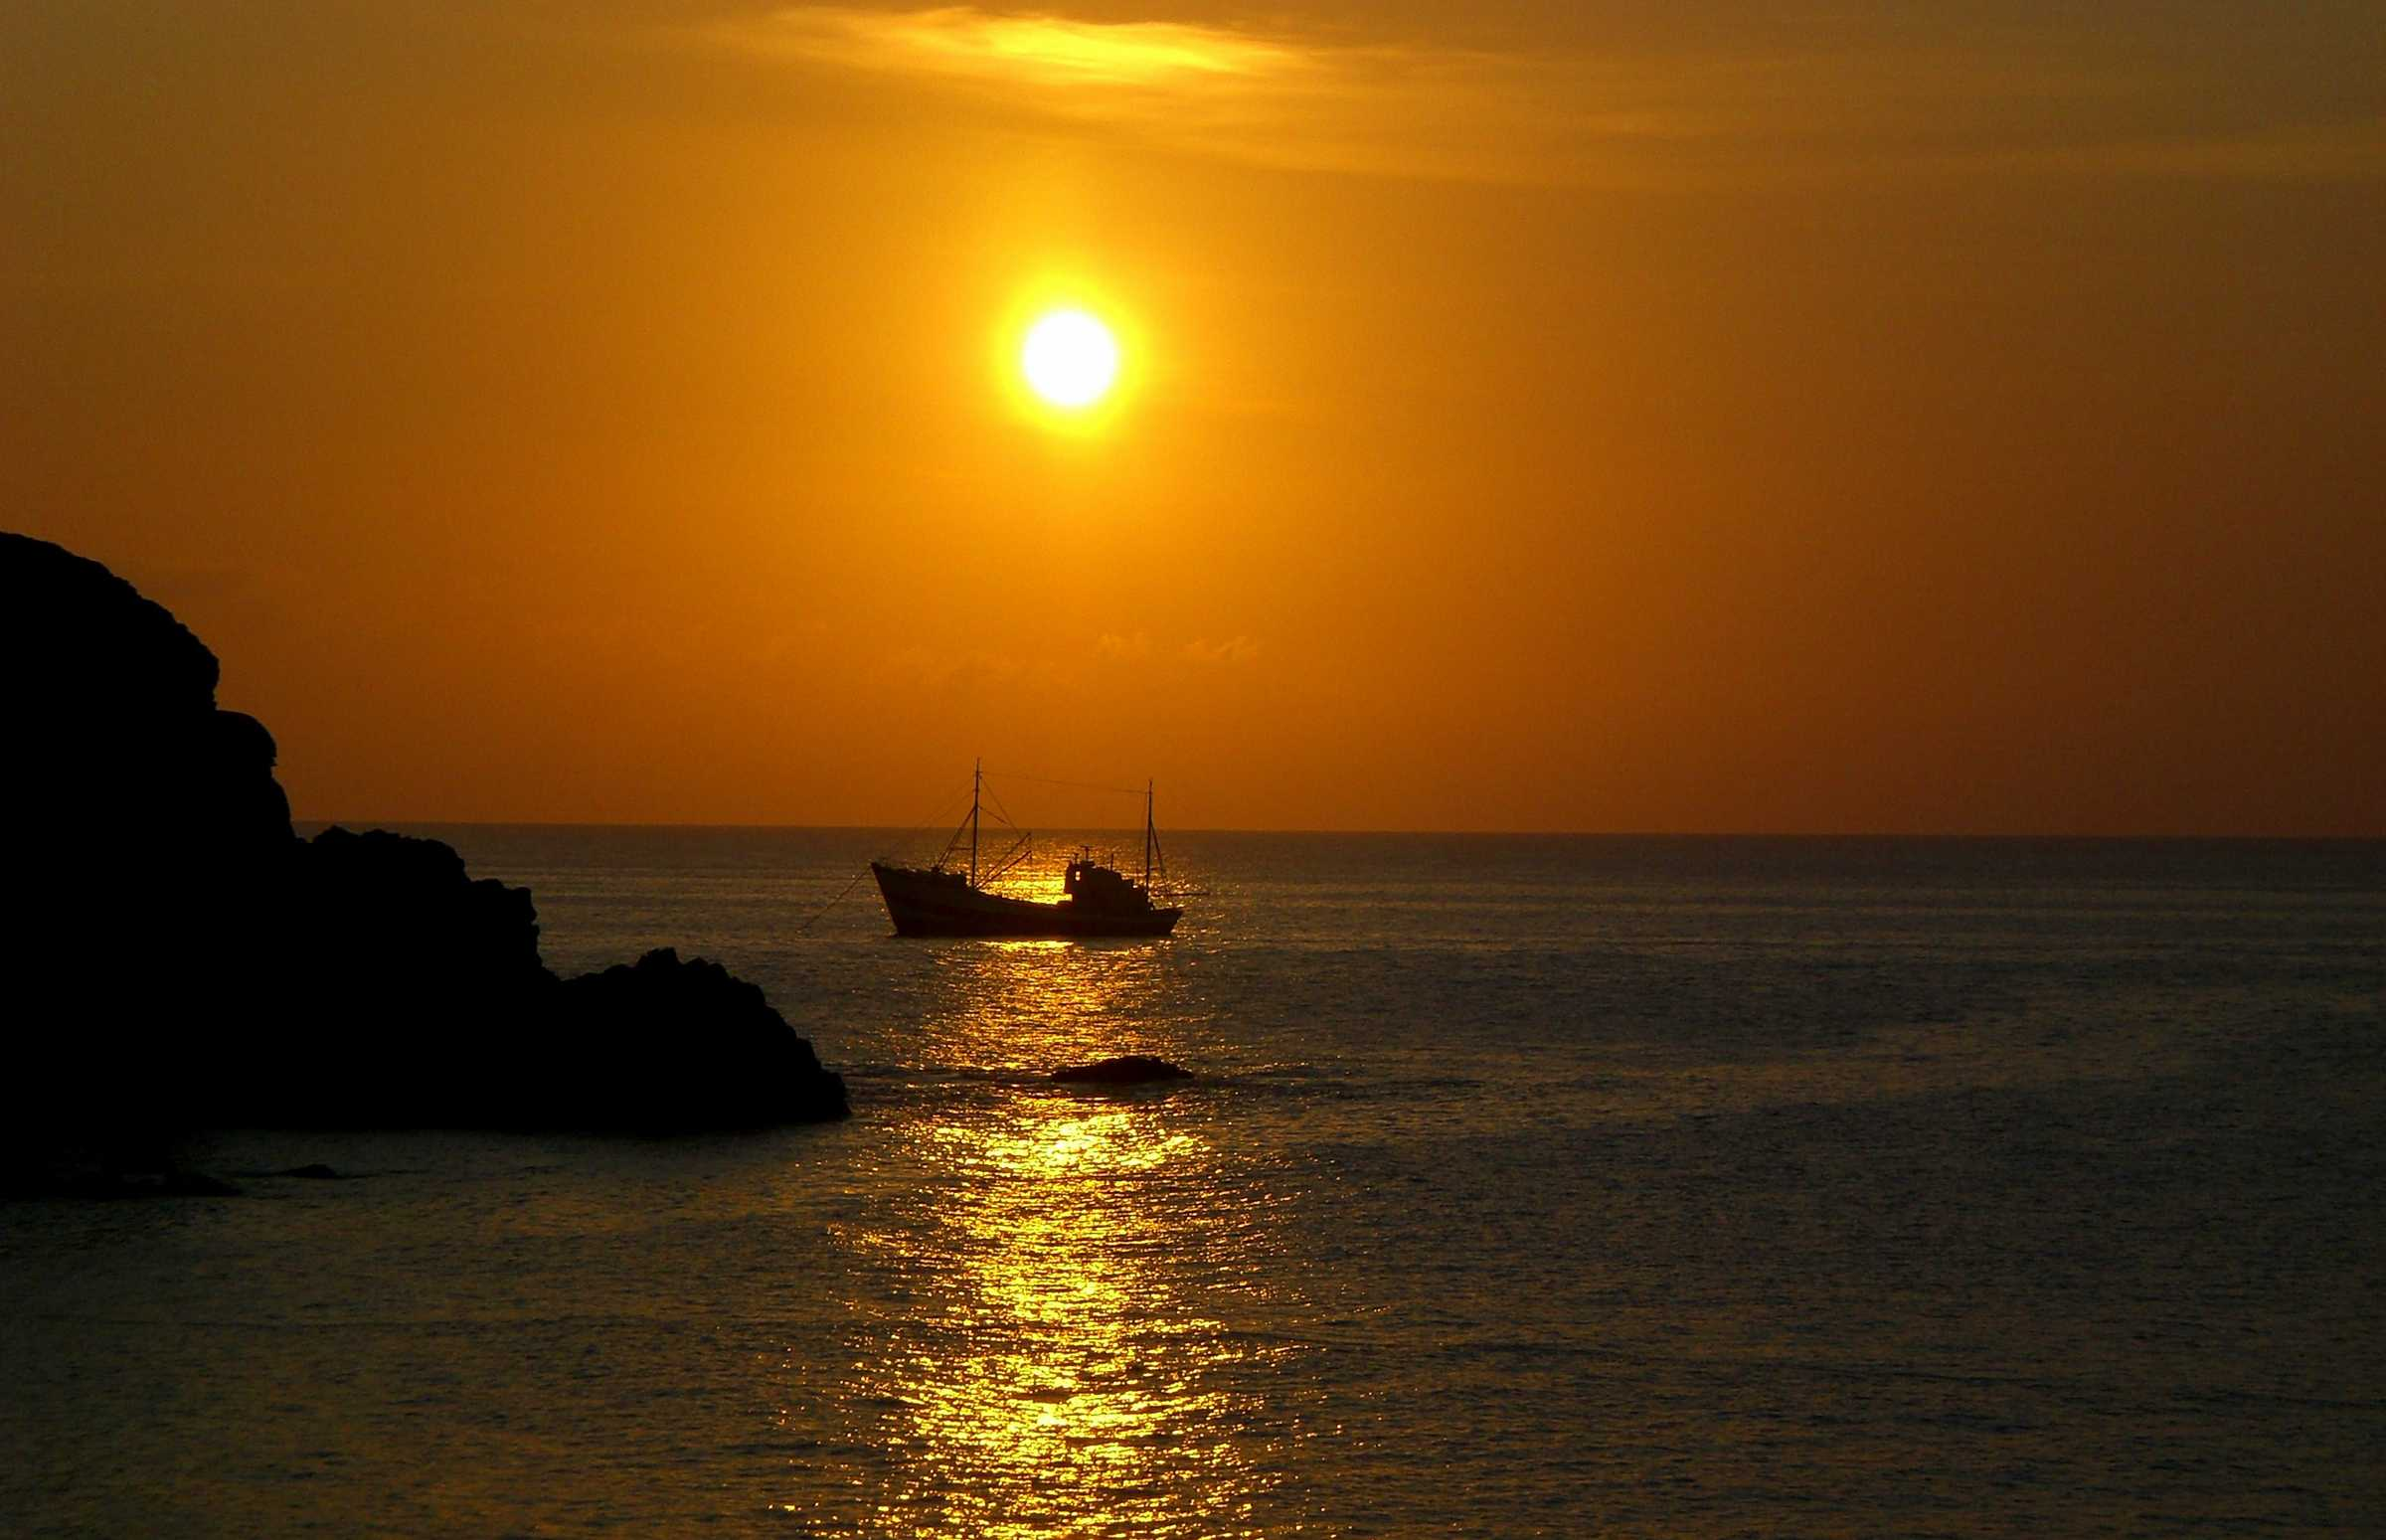 Sunset with fishing vessel Portzic [Saint Helena Island Info:Fishing]